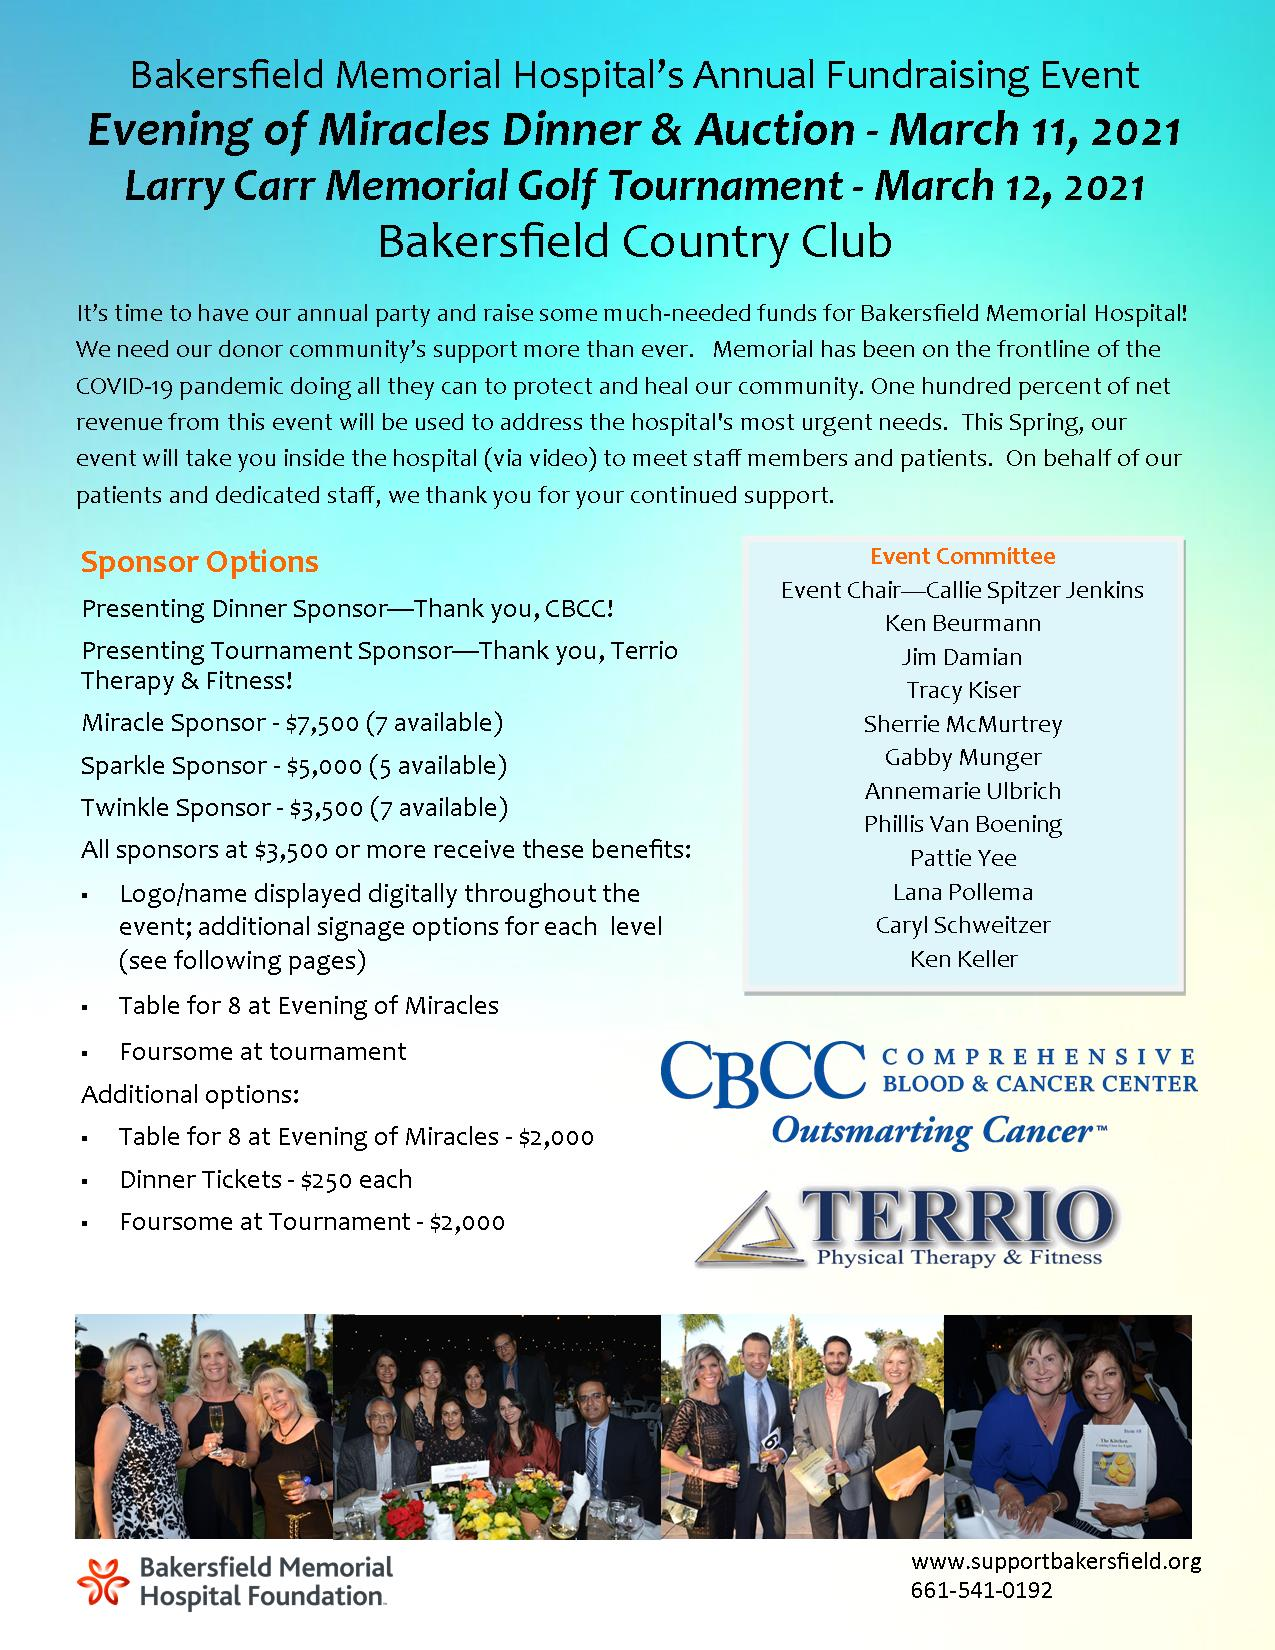 Evening of Miracles & Golf Tournament Sponsorship Information